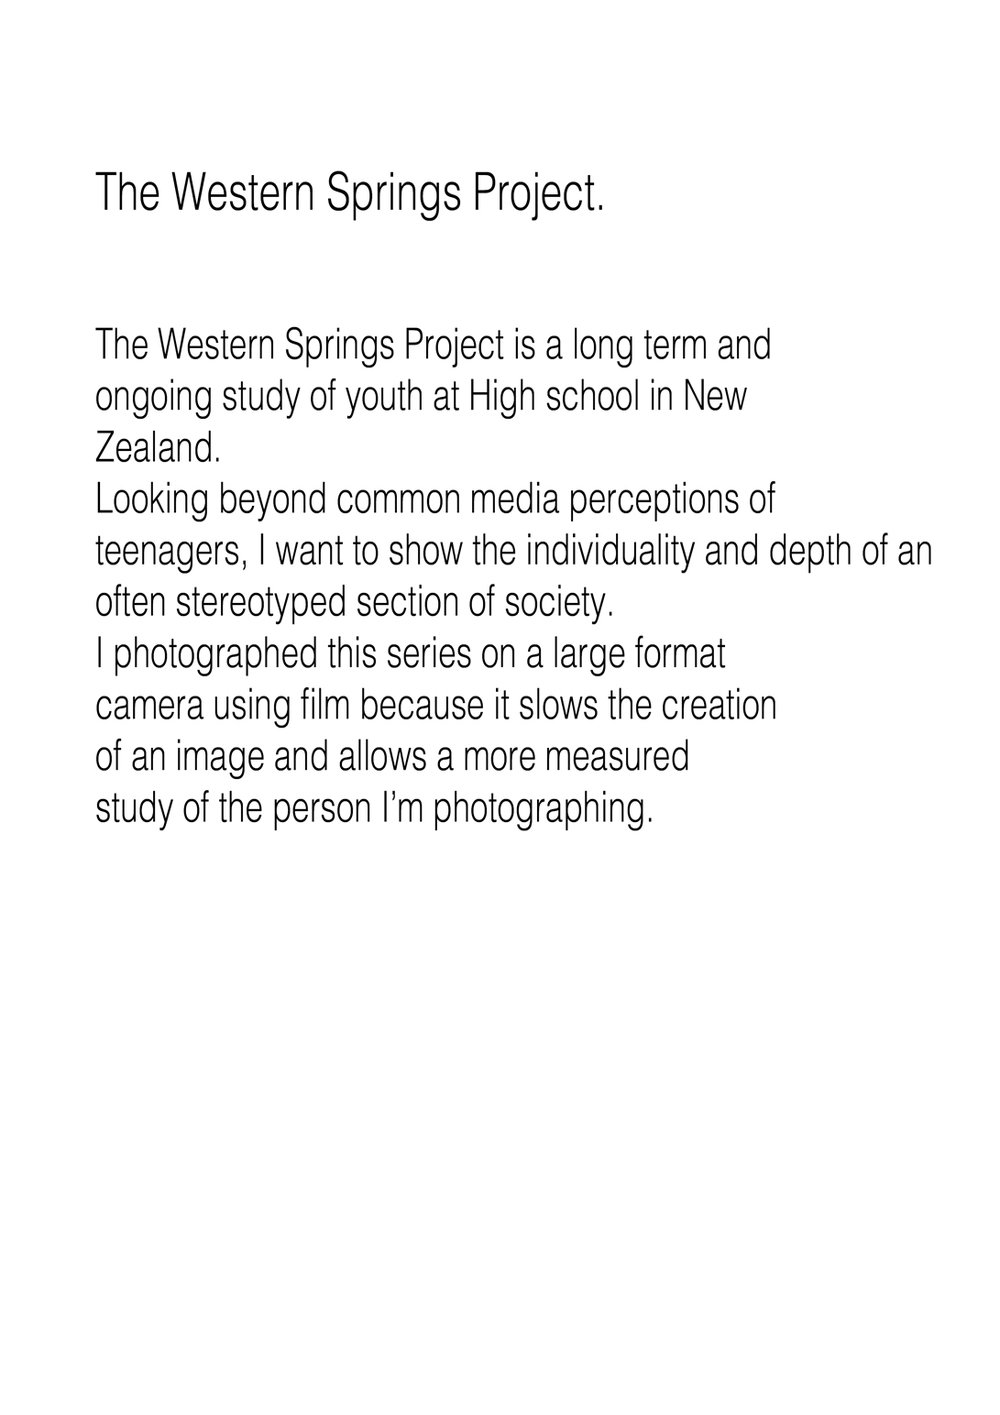 The Western Springs Project.statement.jpg